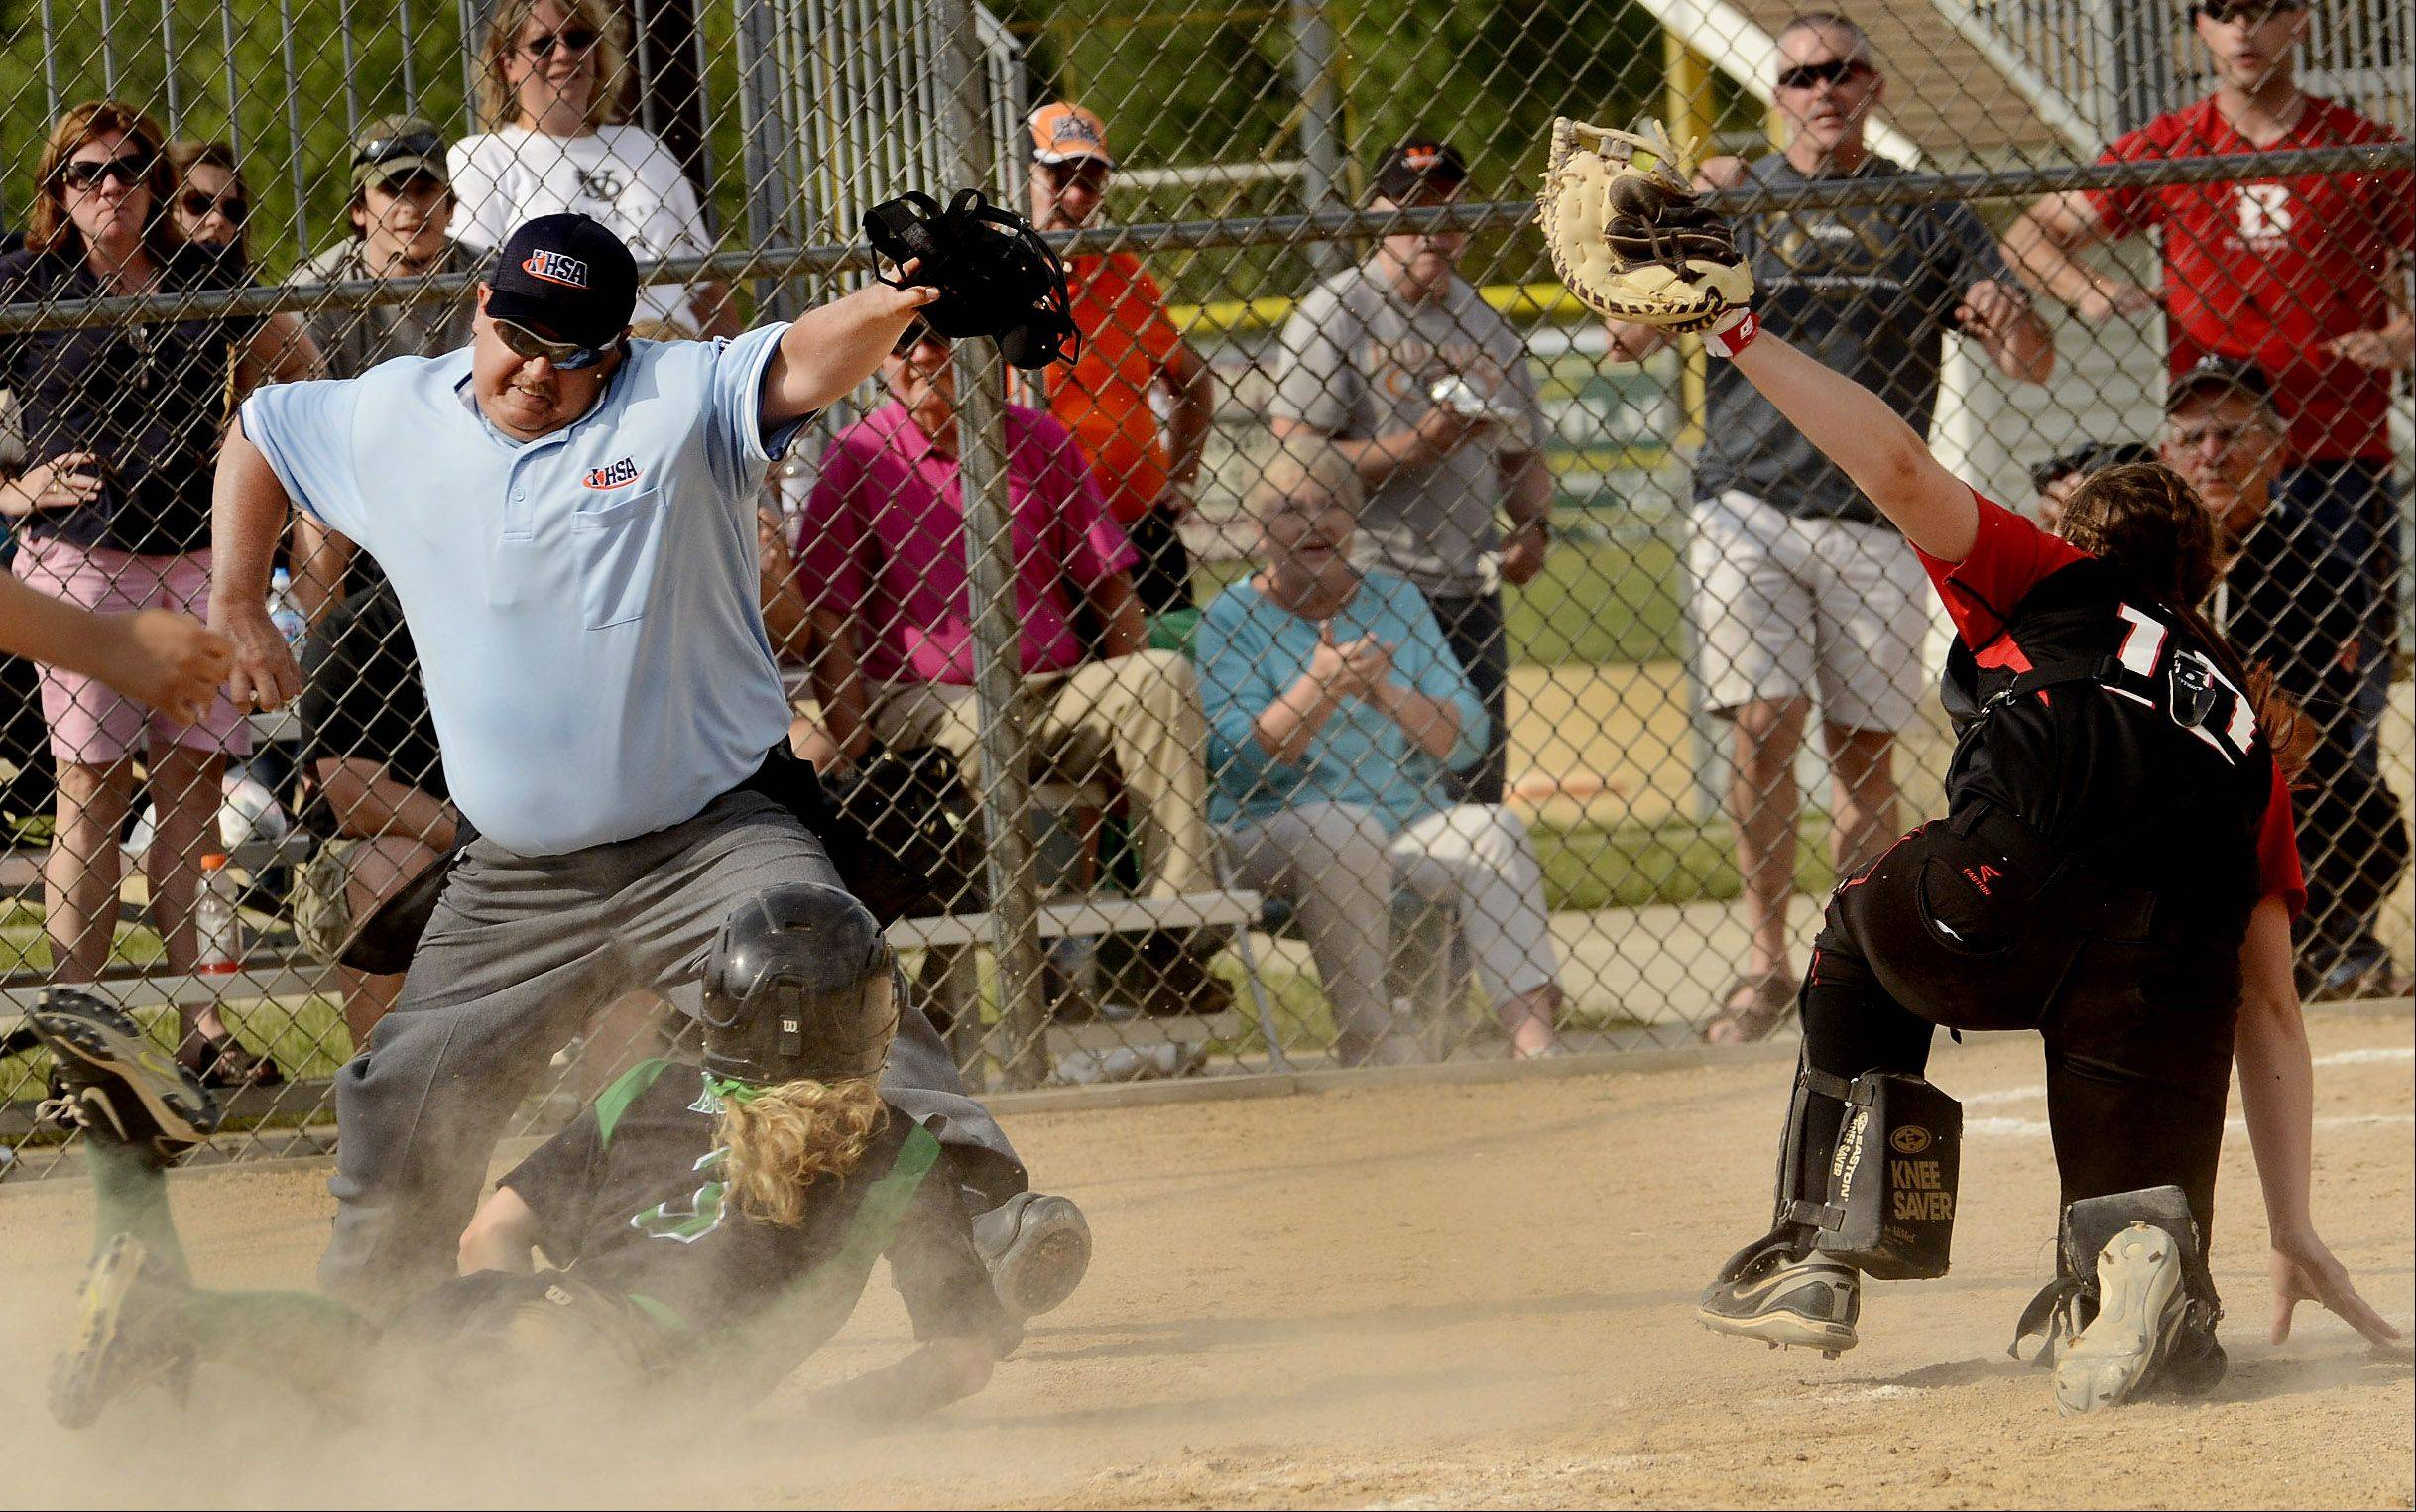 York's Kelly Mordini is tagged out at the plate by Barrington catcher Raegan Fingerman in the bottom of the 6th inning during Class 4A softball third place game between Barrington and York.